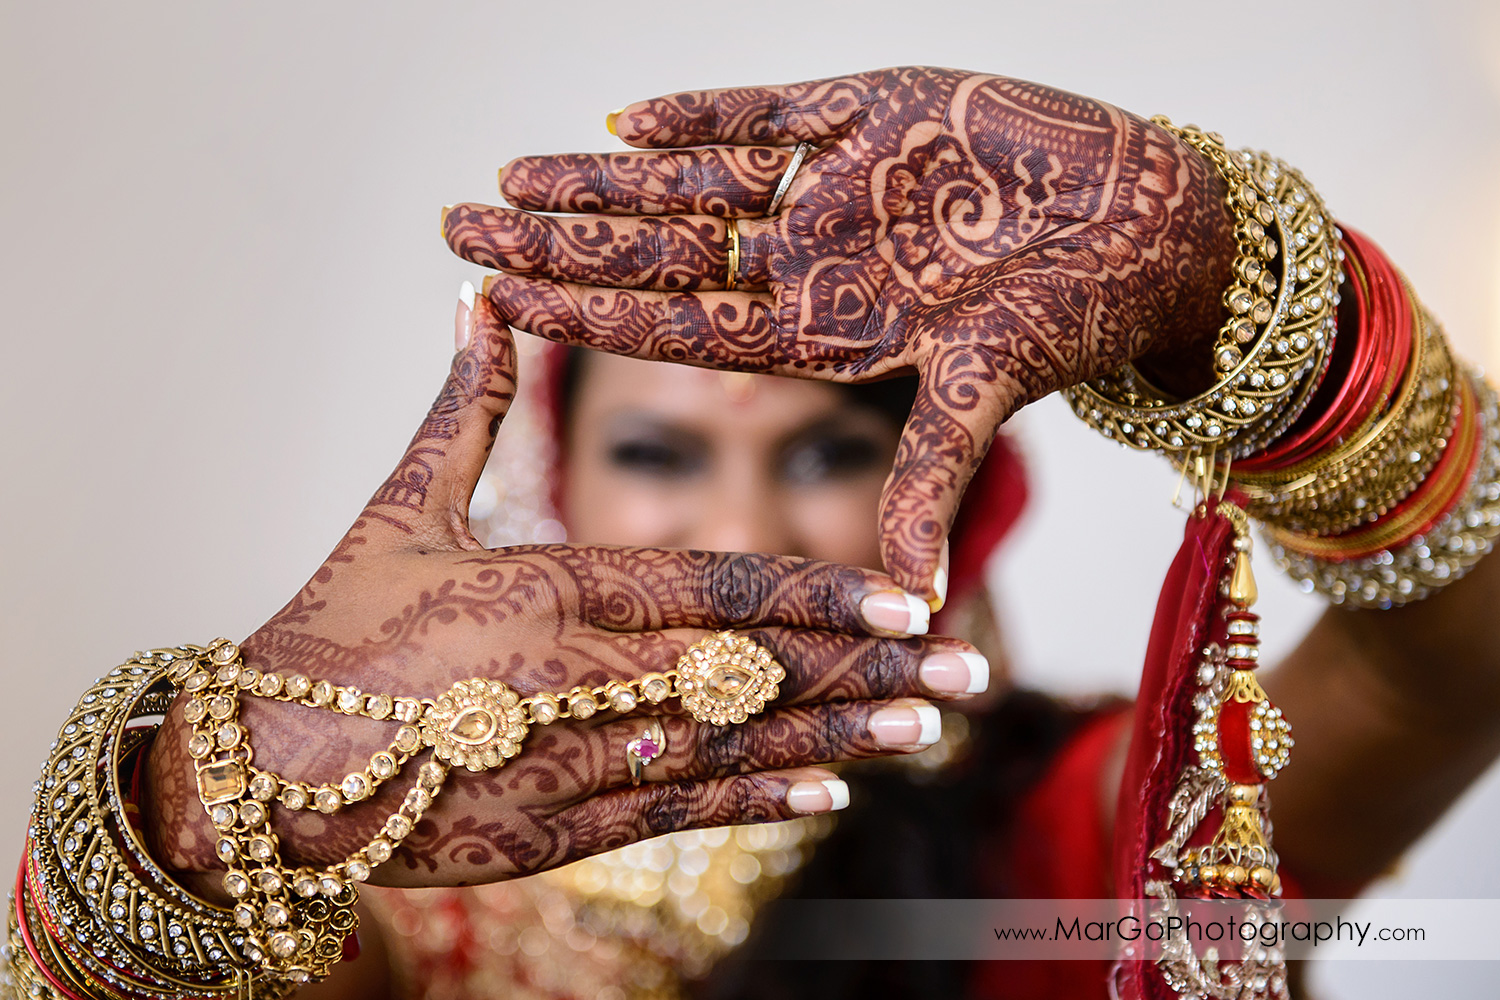 wedding henna on the indian bride hands at Hotel Shattuck Plaza in Berkeley